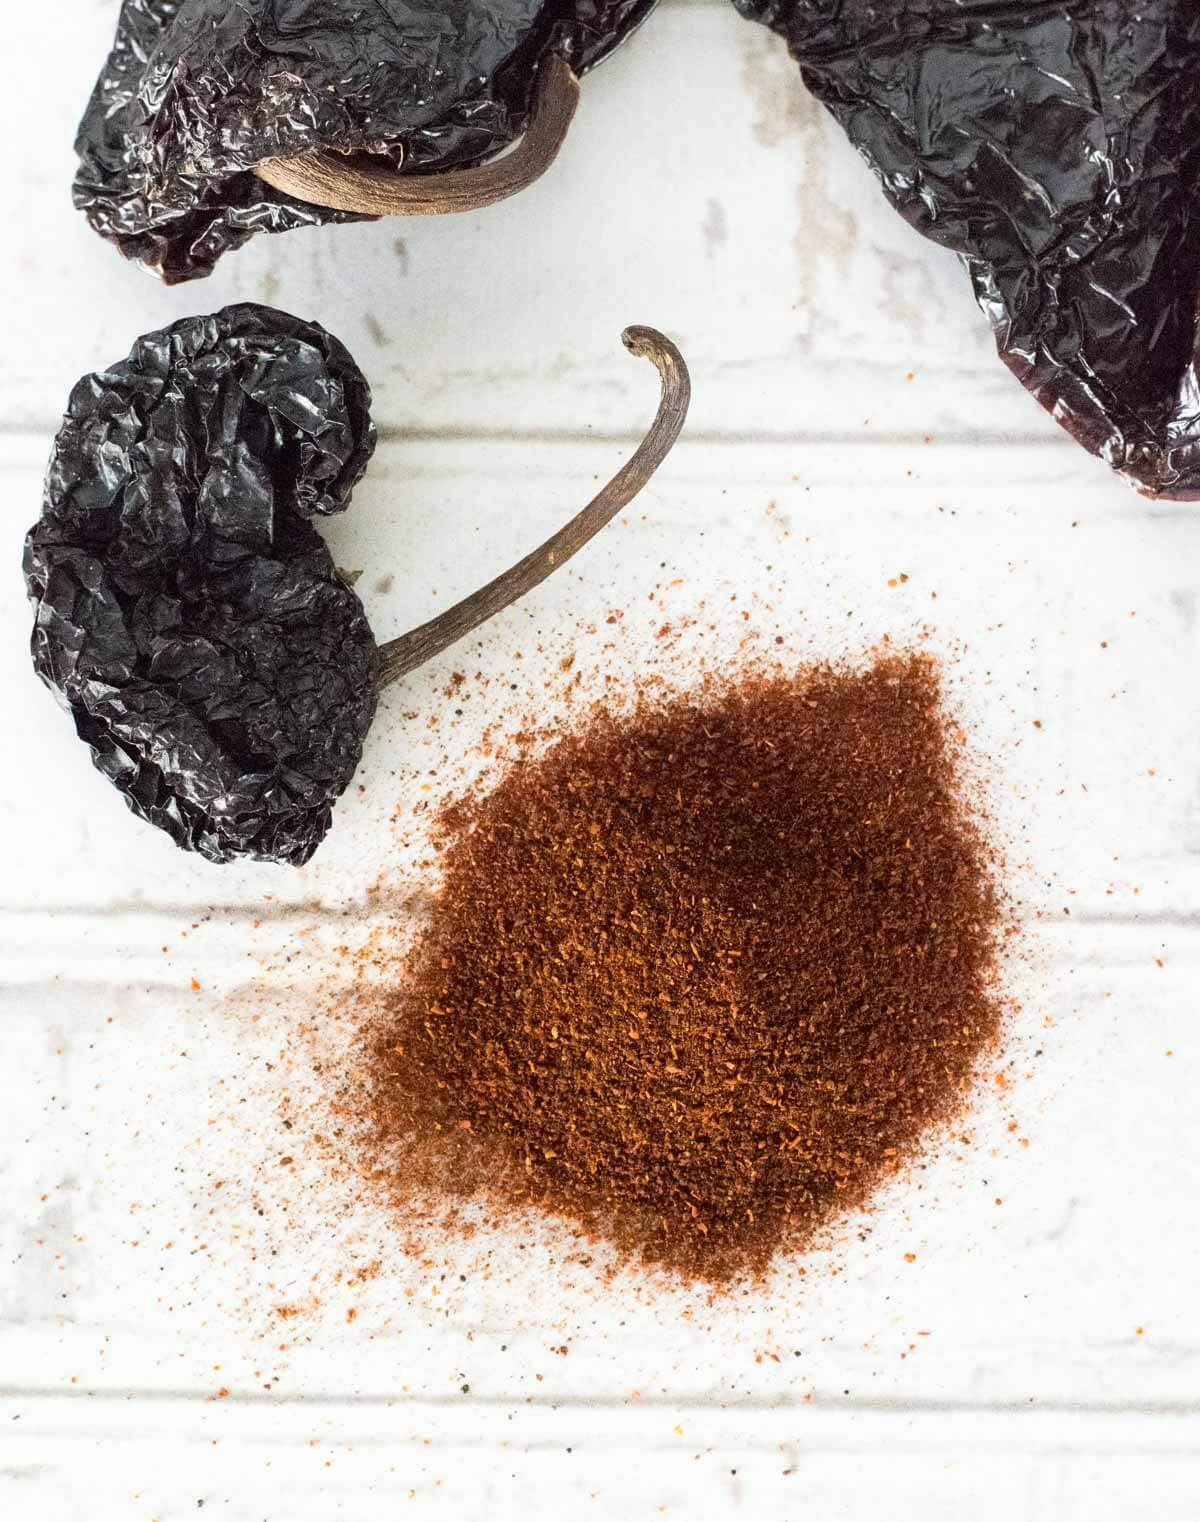 Ancho chili powder with dried peppers and seasoning